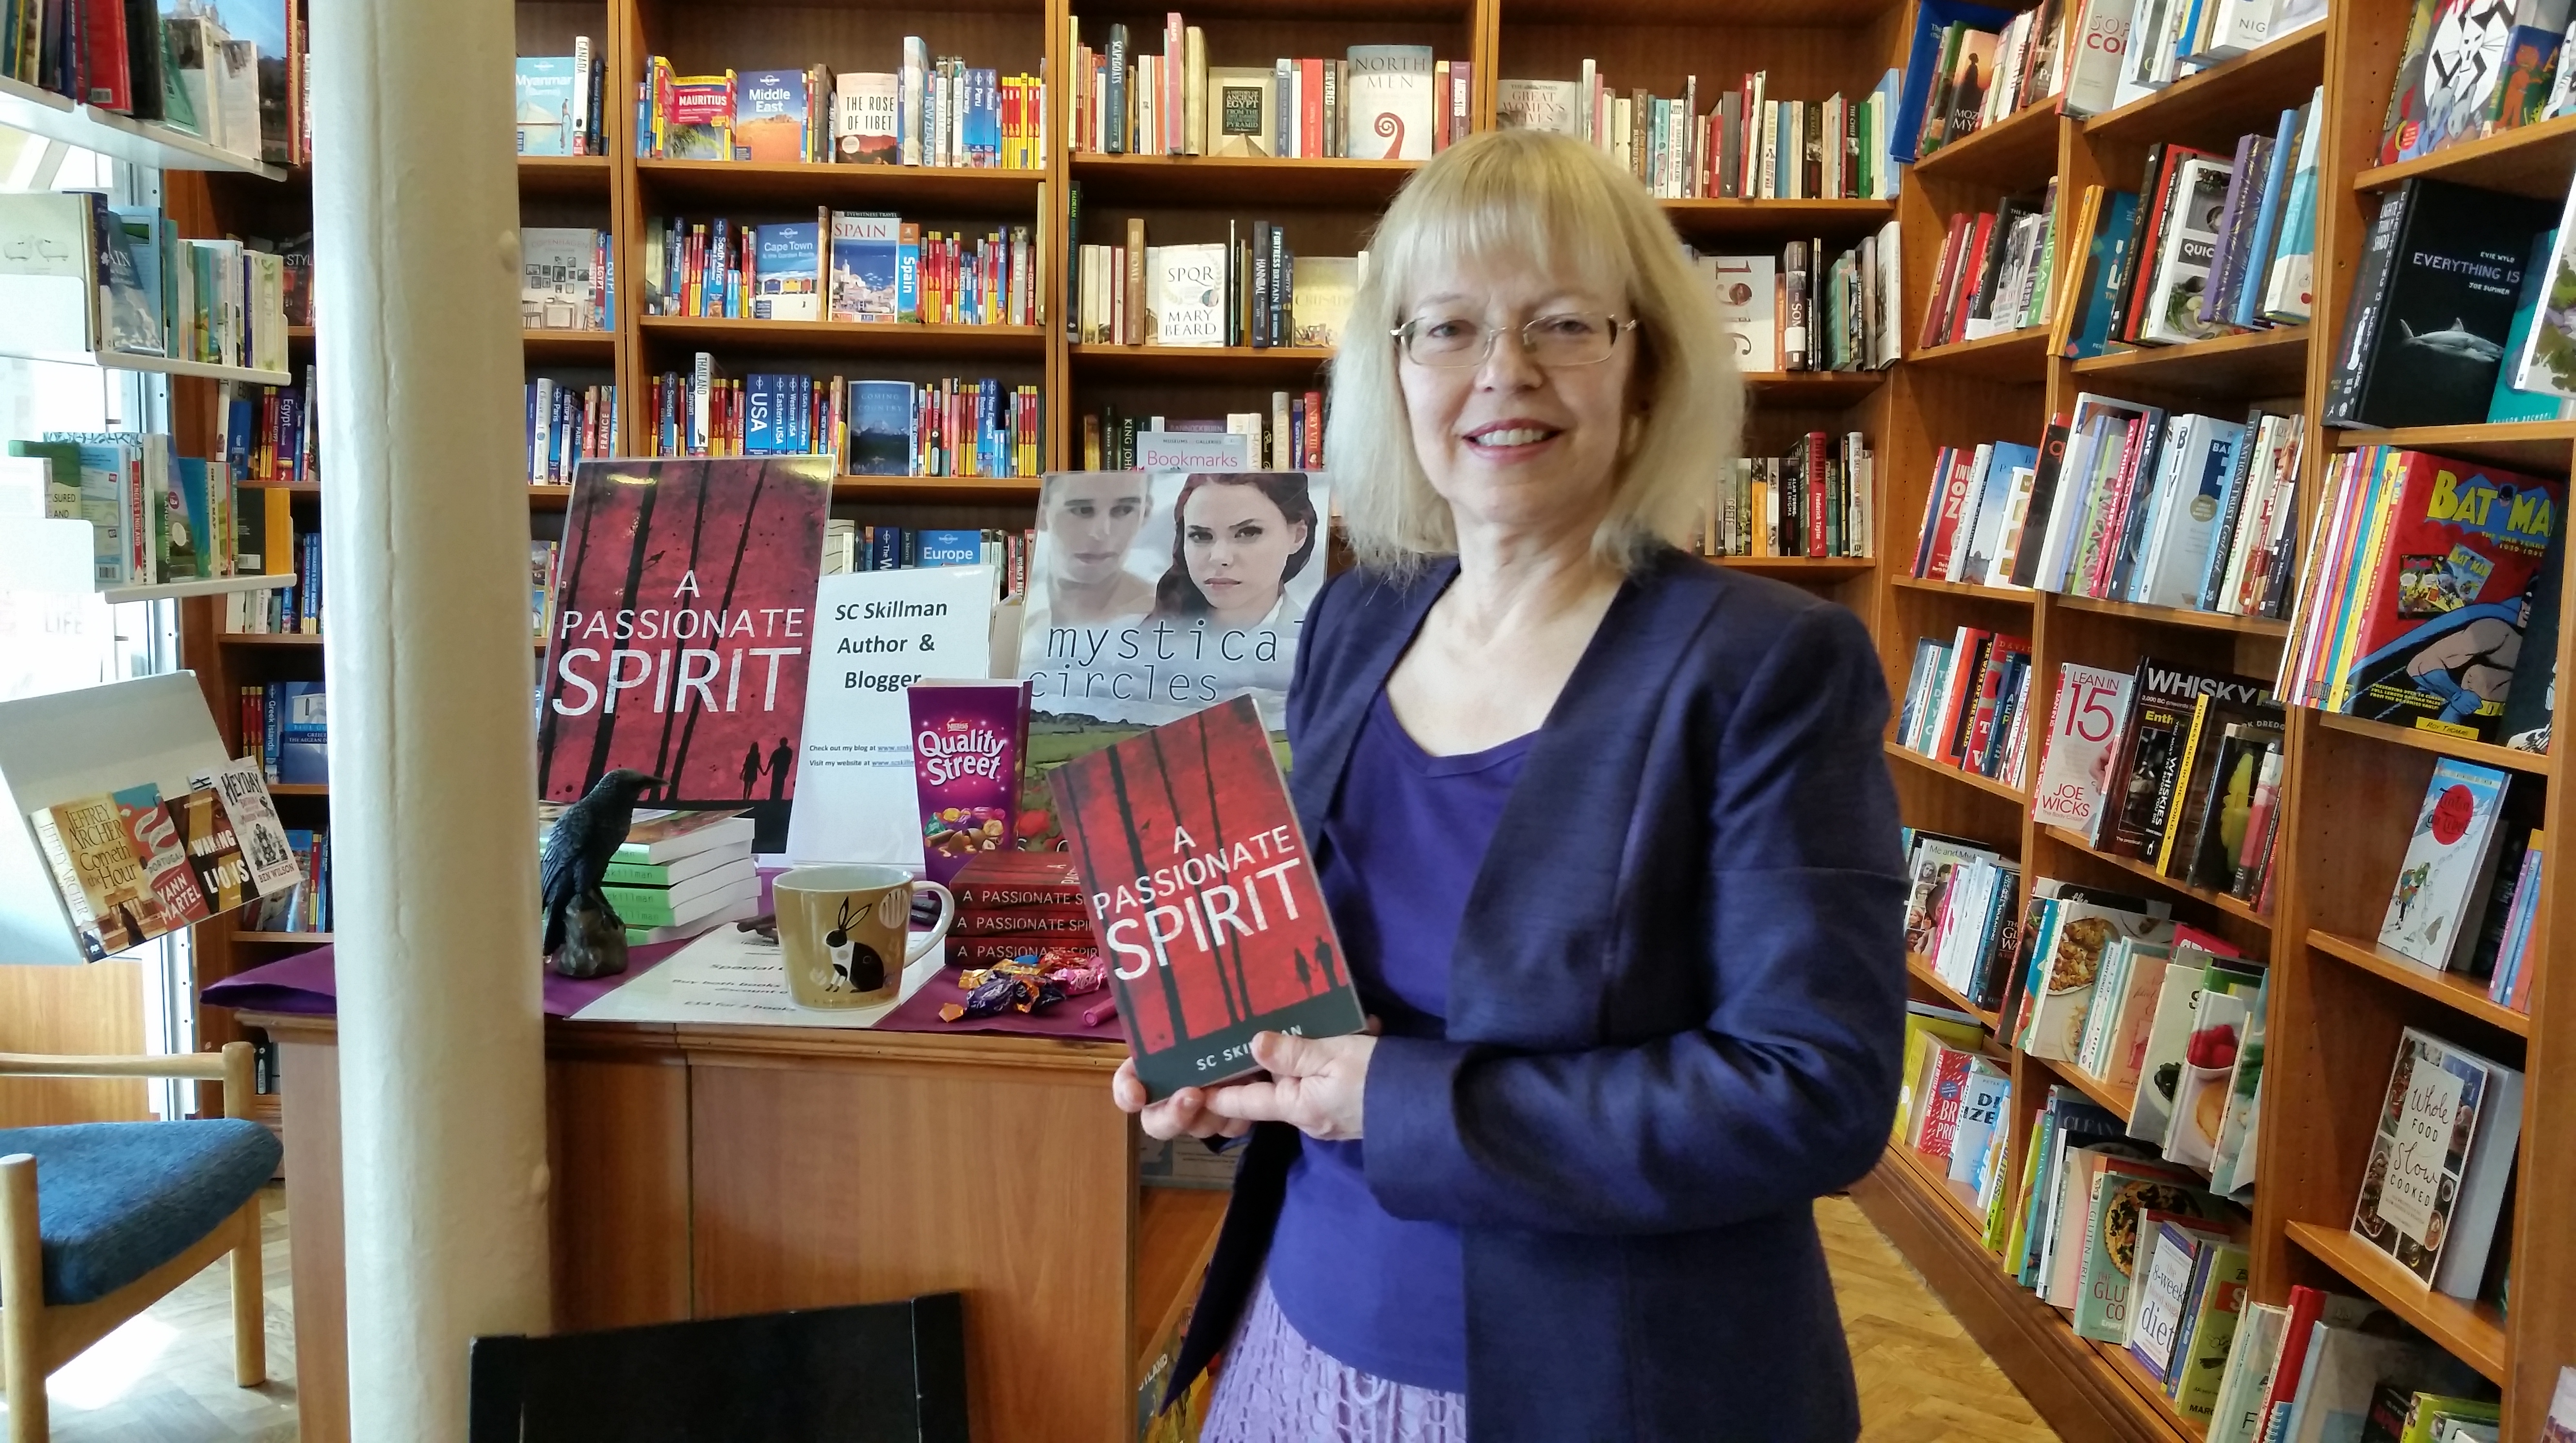 SC Skillman in Warwick Books for book-signing 7 May 2016